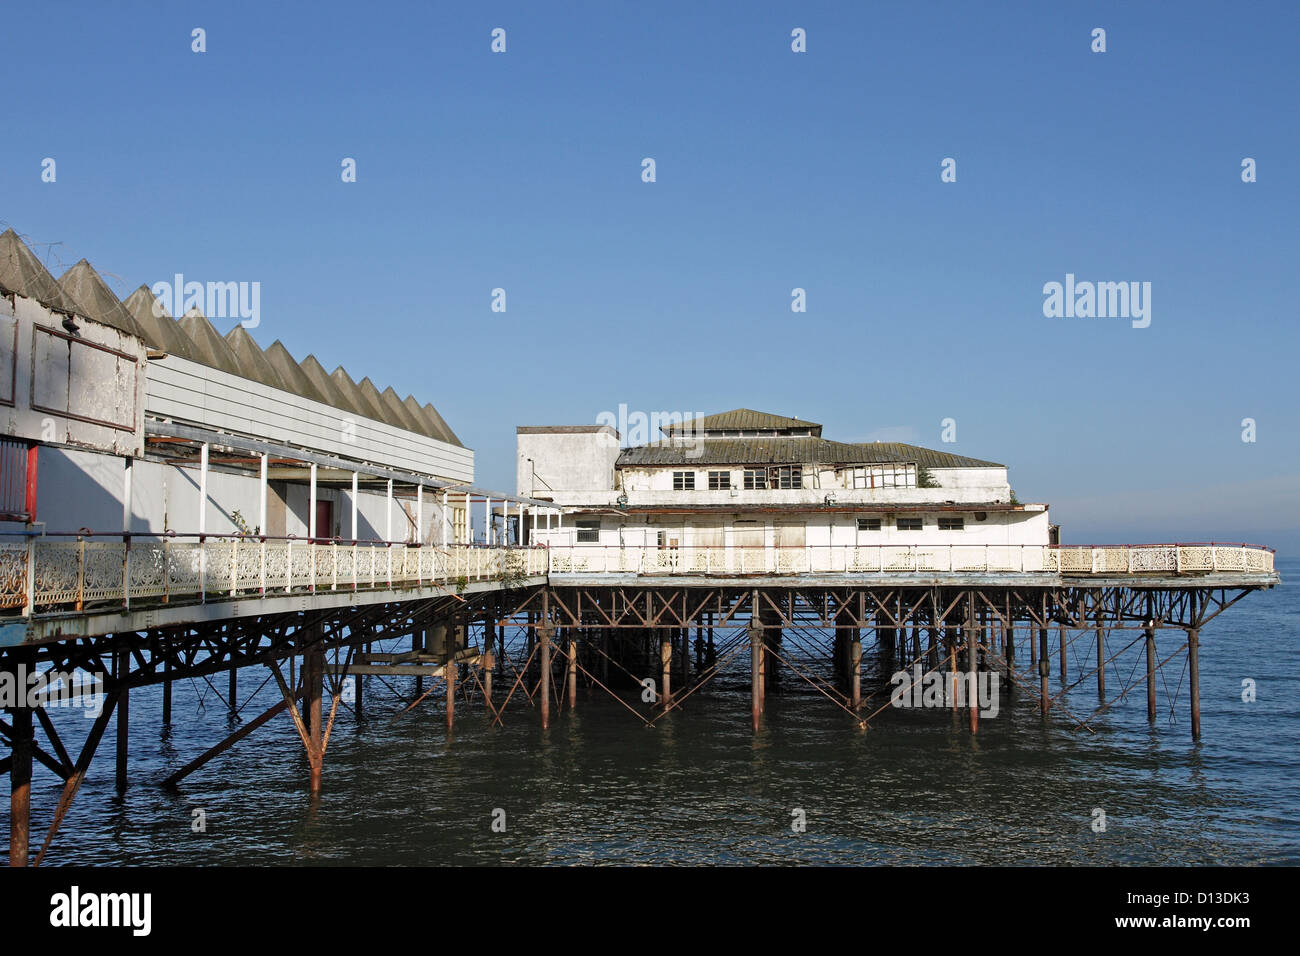 The old dilapidated Victorian Pier in Colwyn Bay, North Wales. - Stock Image